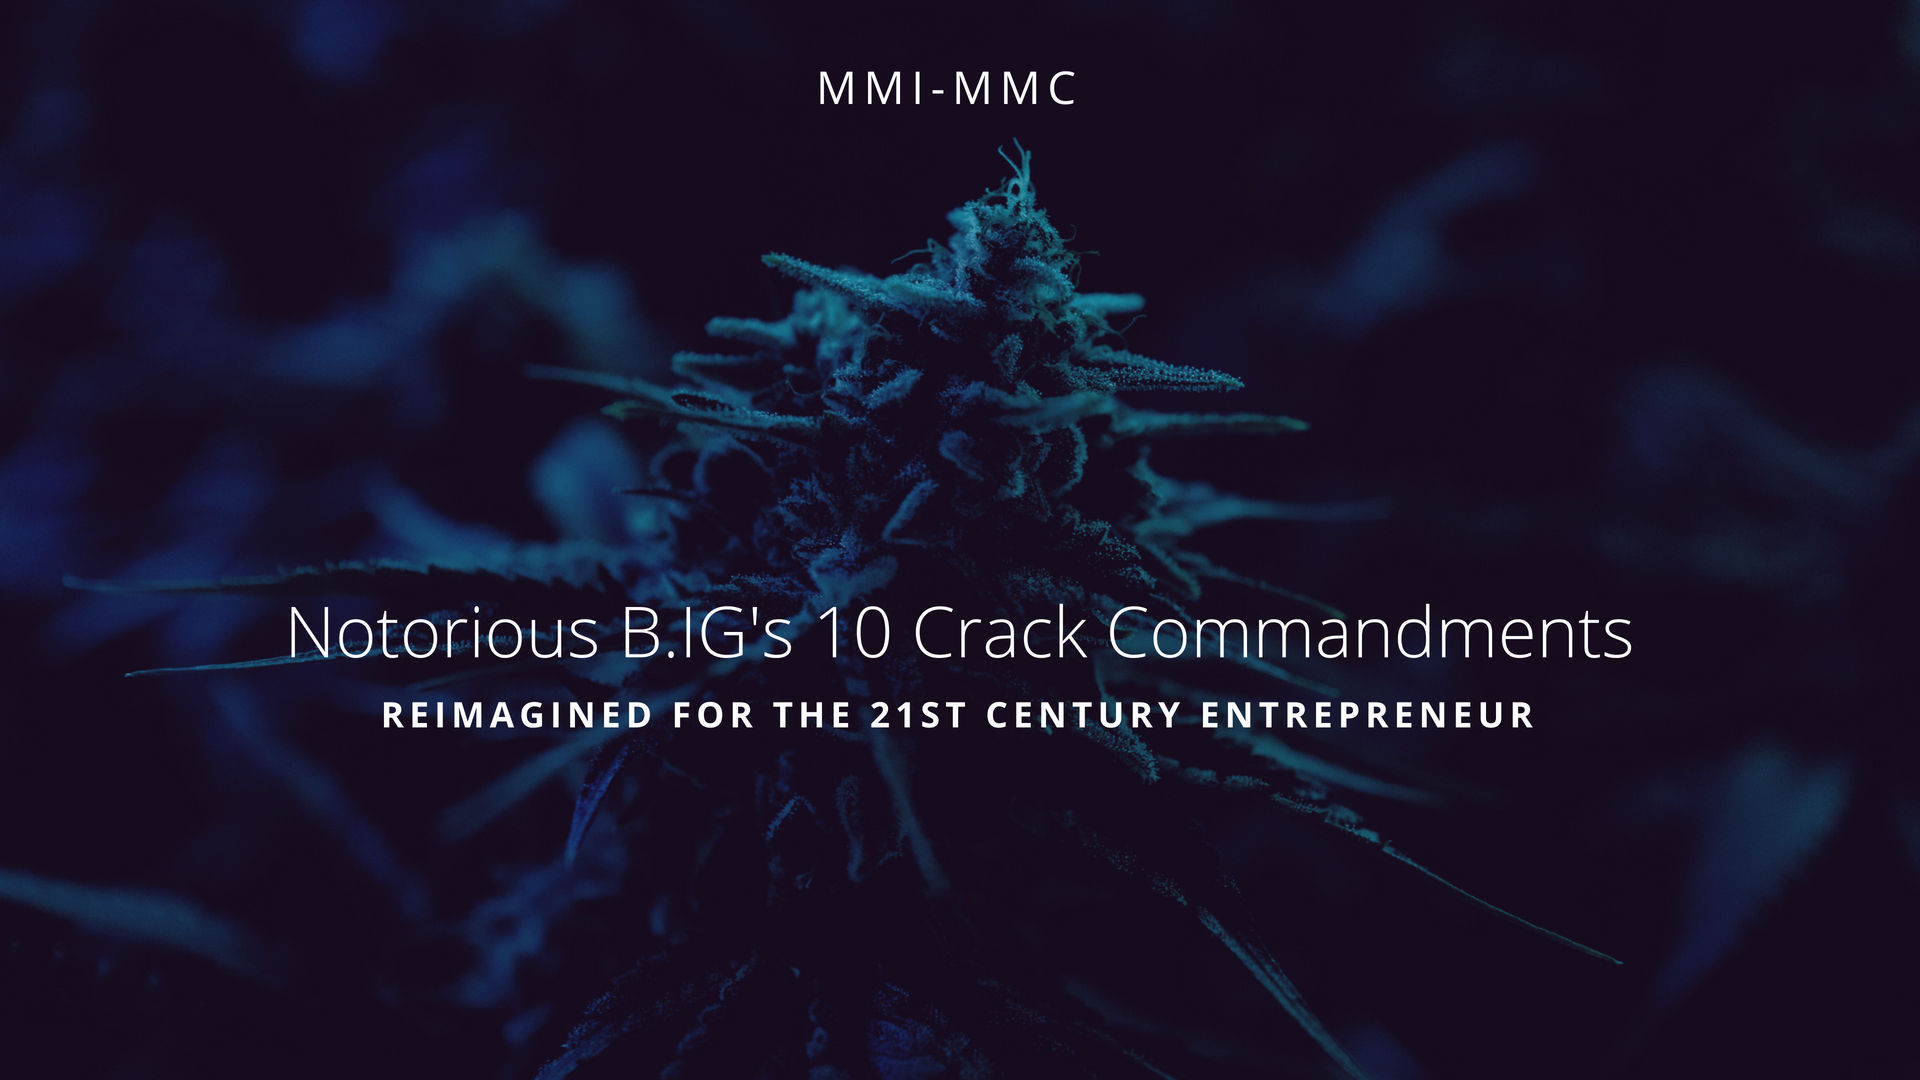 Poster: 10 crack commandments for 21st century entrepreneur featuring image of marijuana bud